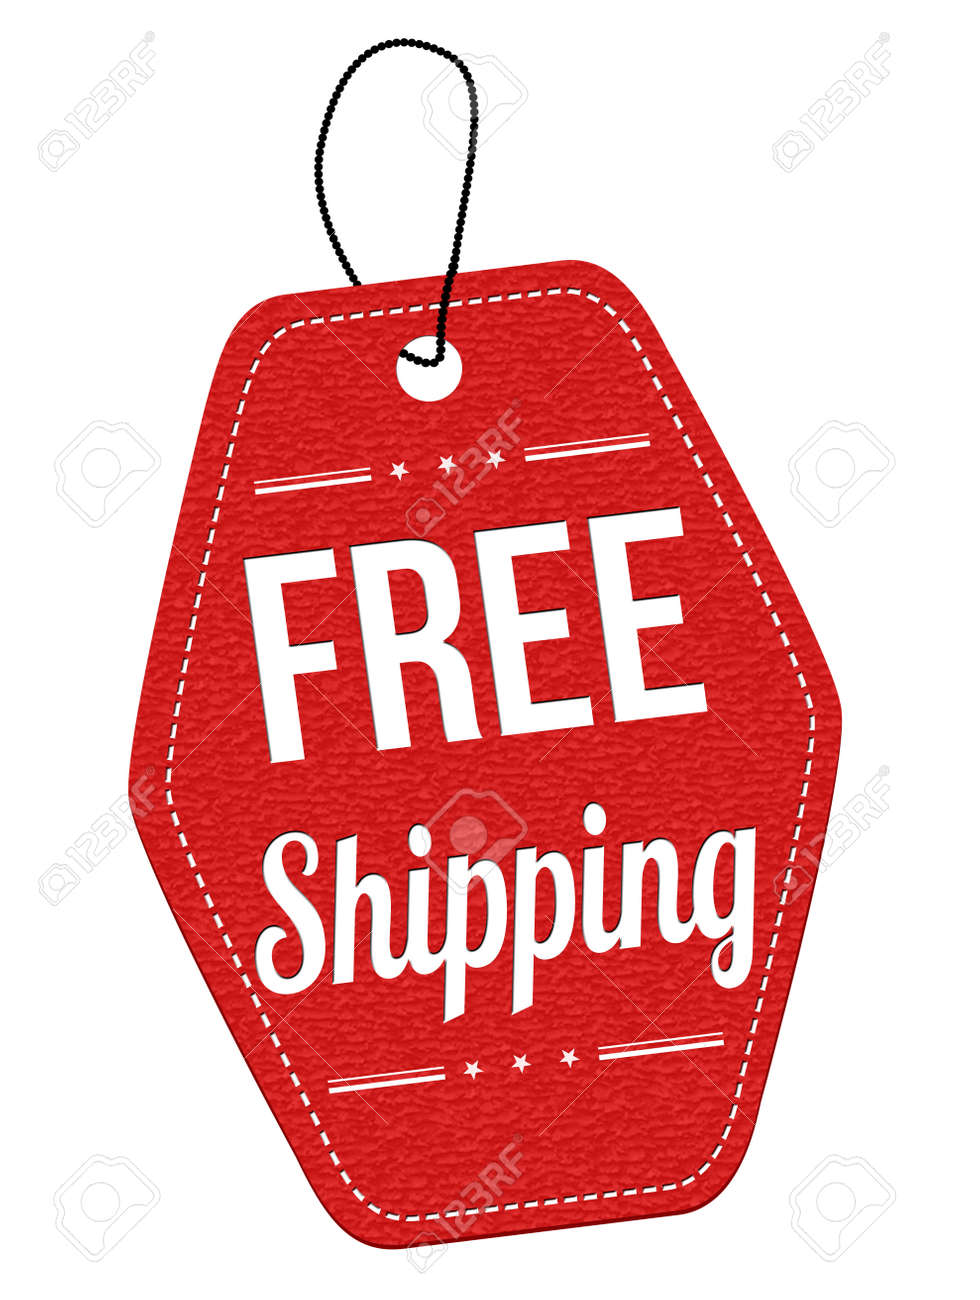 free shipping red leather label or price tag on white background